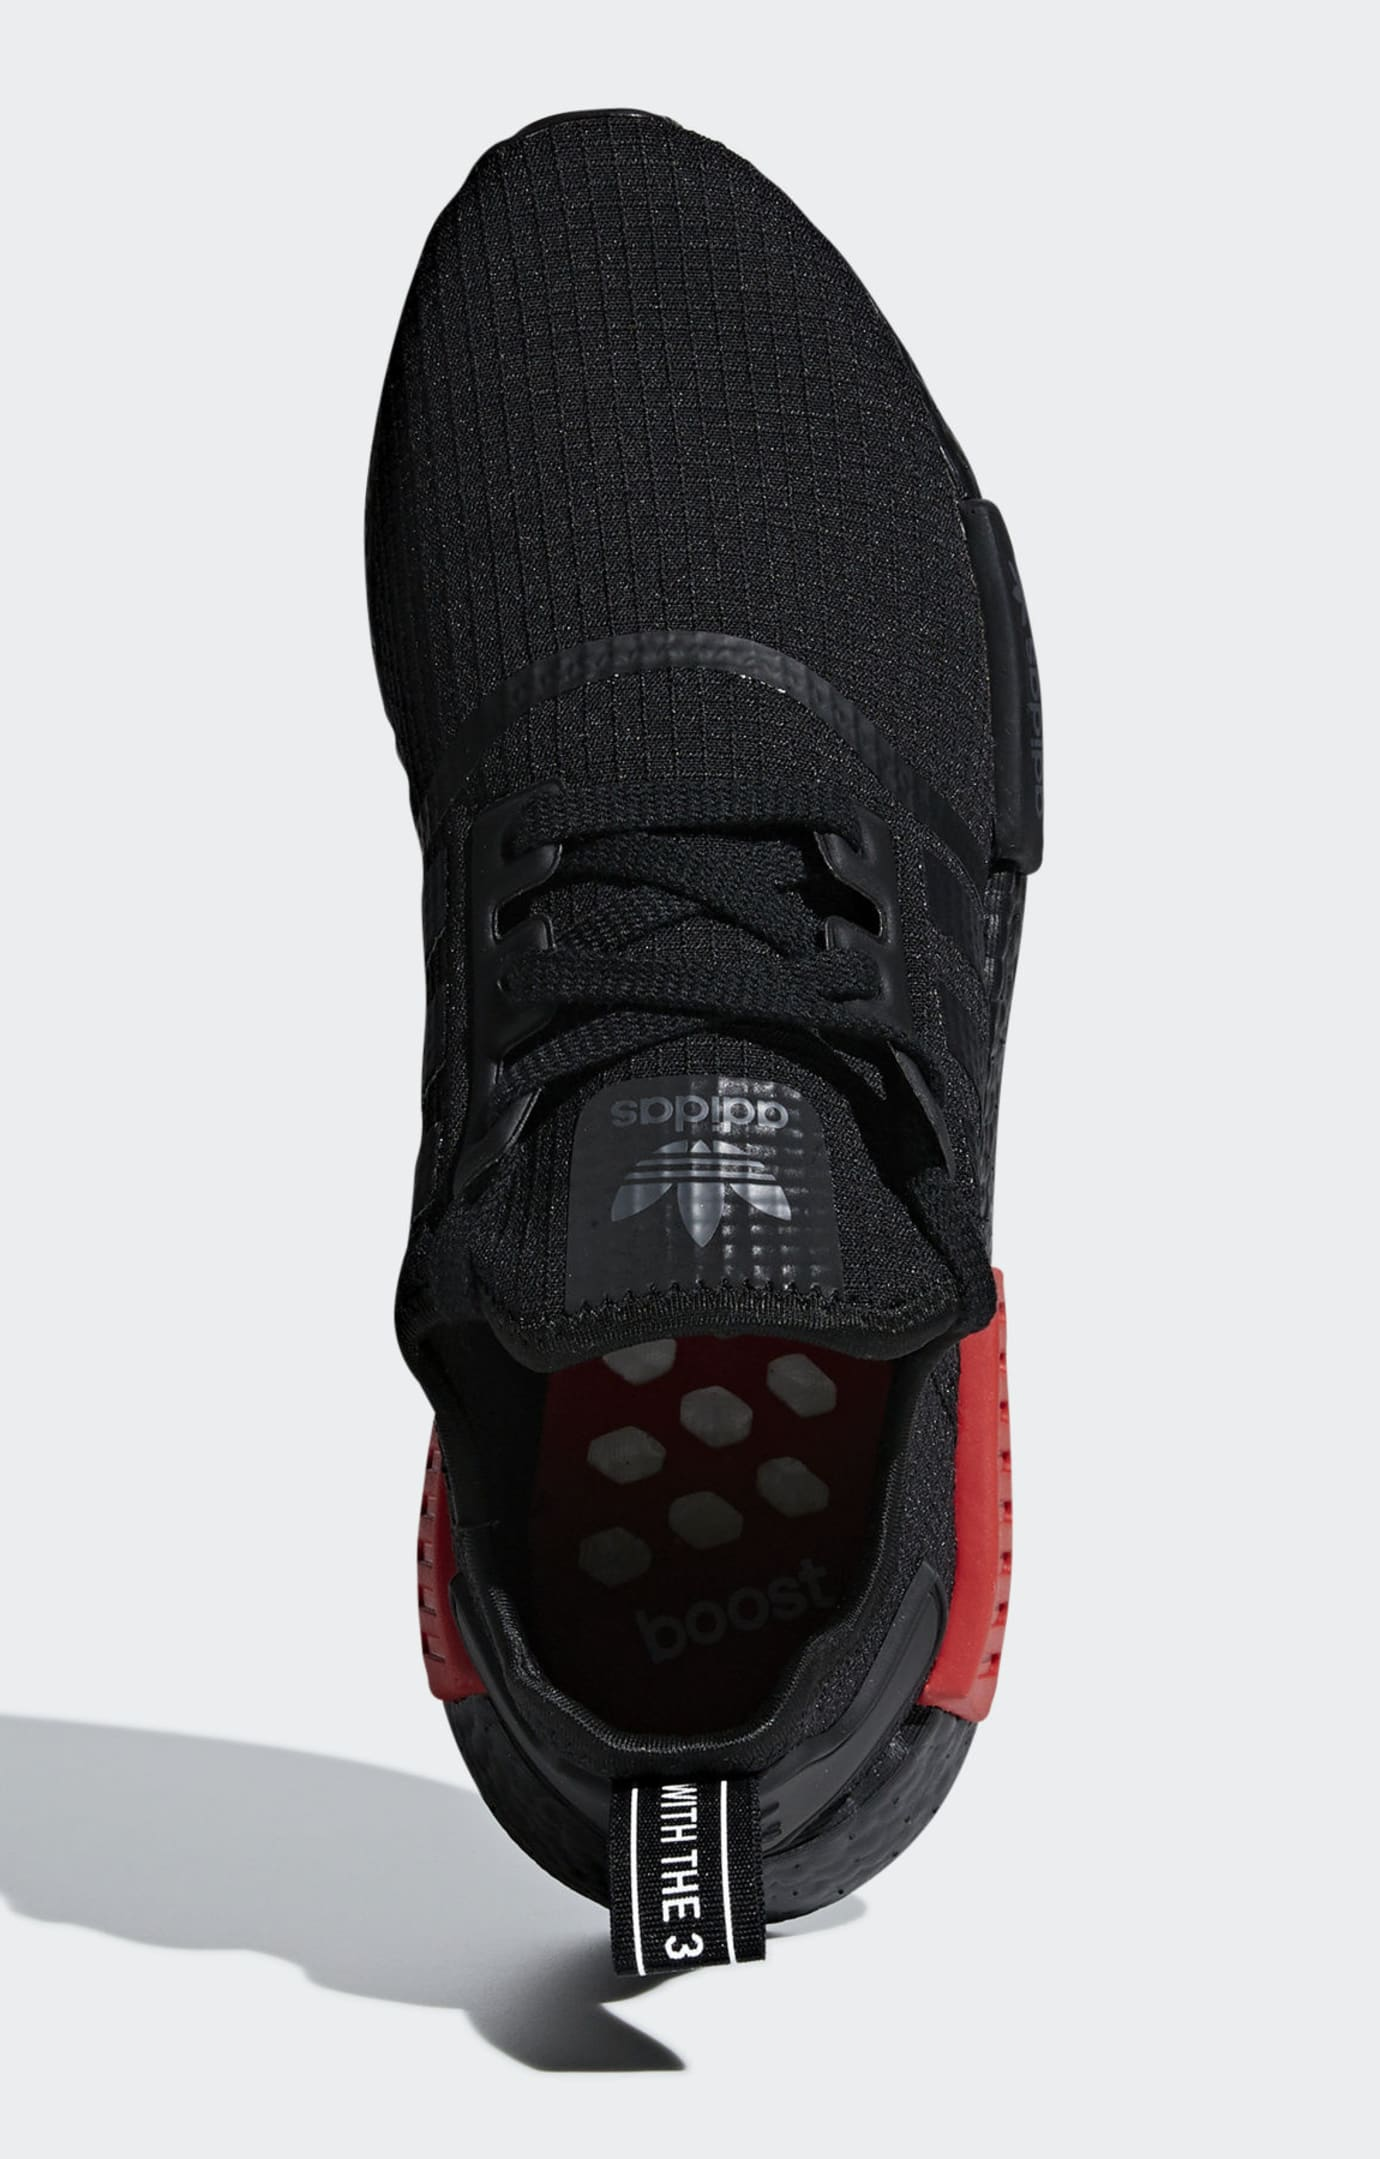 on sale 5d37c 185fb Adidas NMD_R1 'Bred' Release Date Sept. 6, 2018 B37618 ...